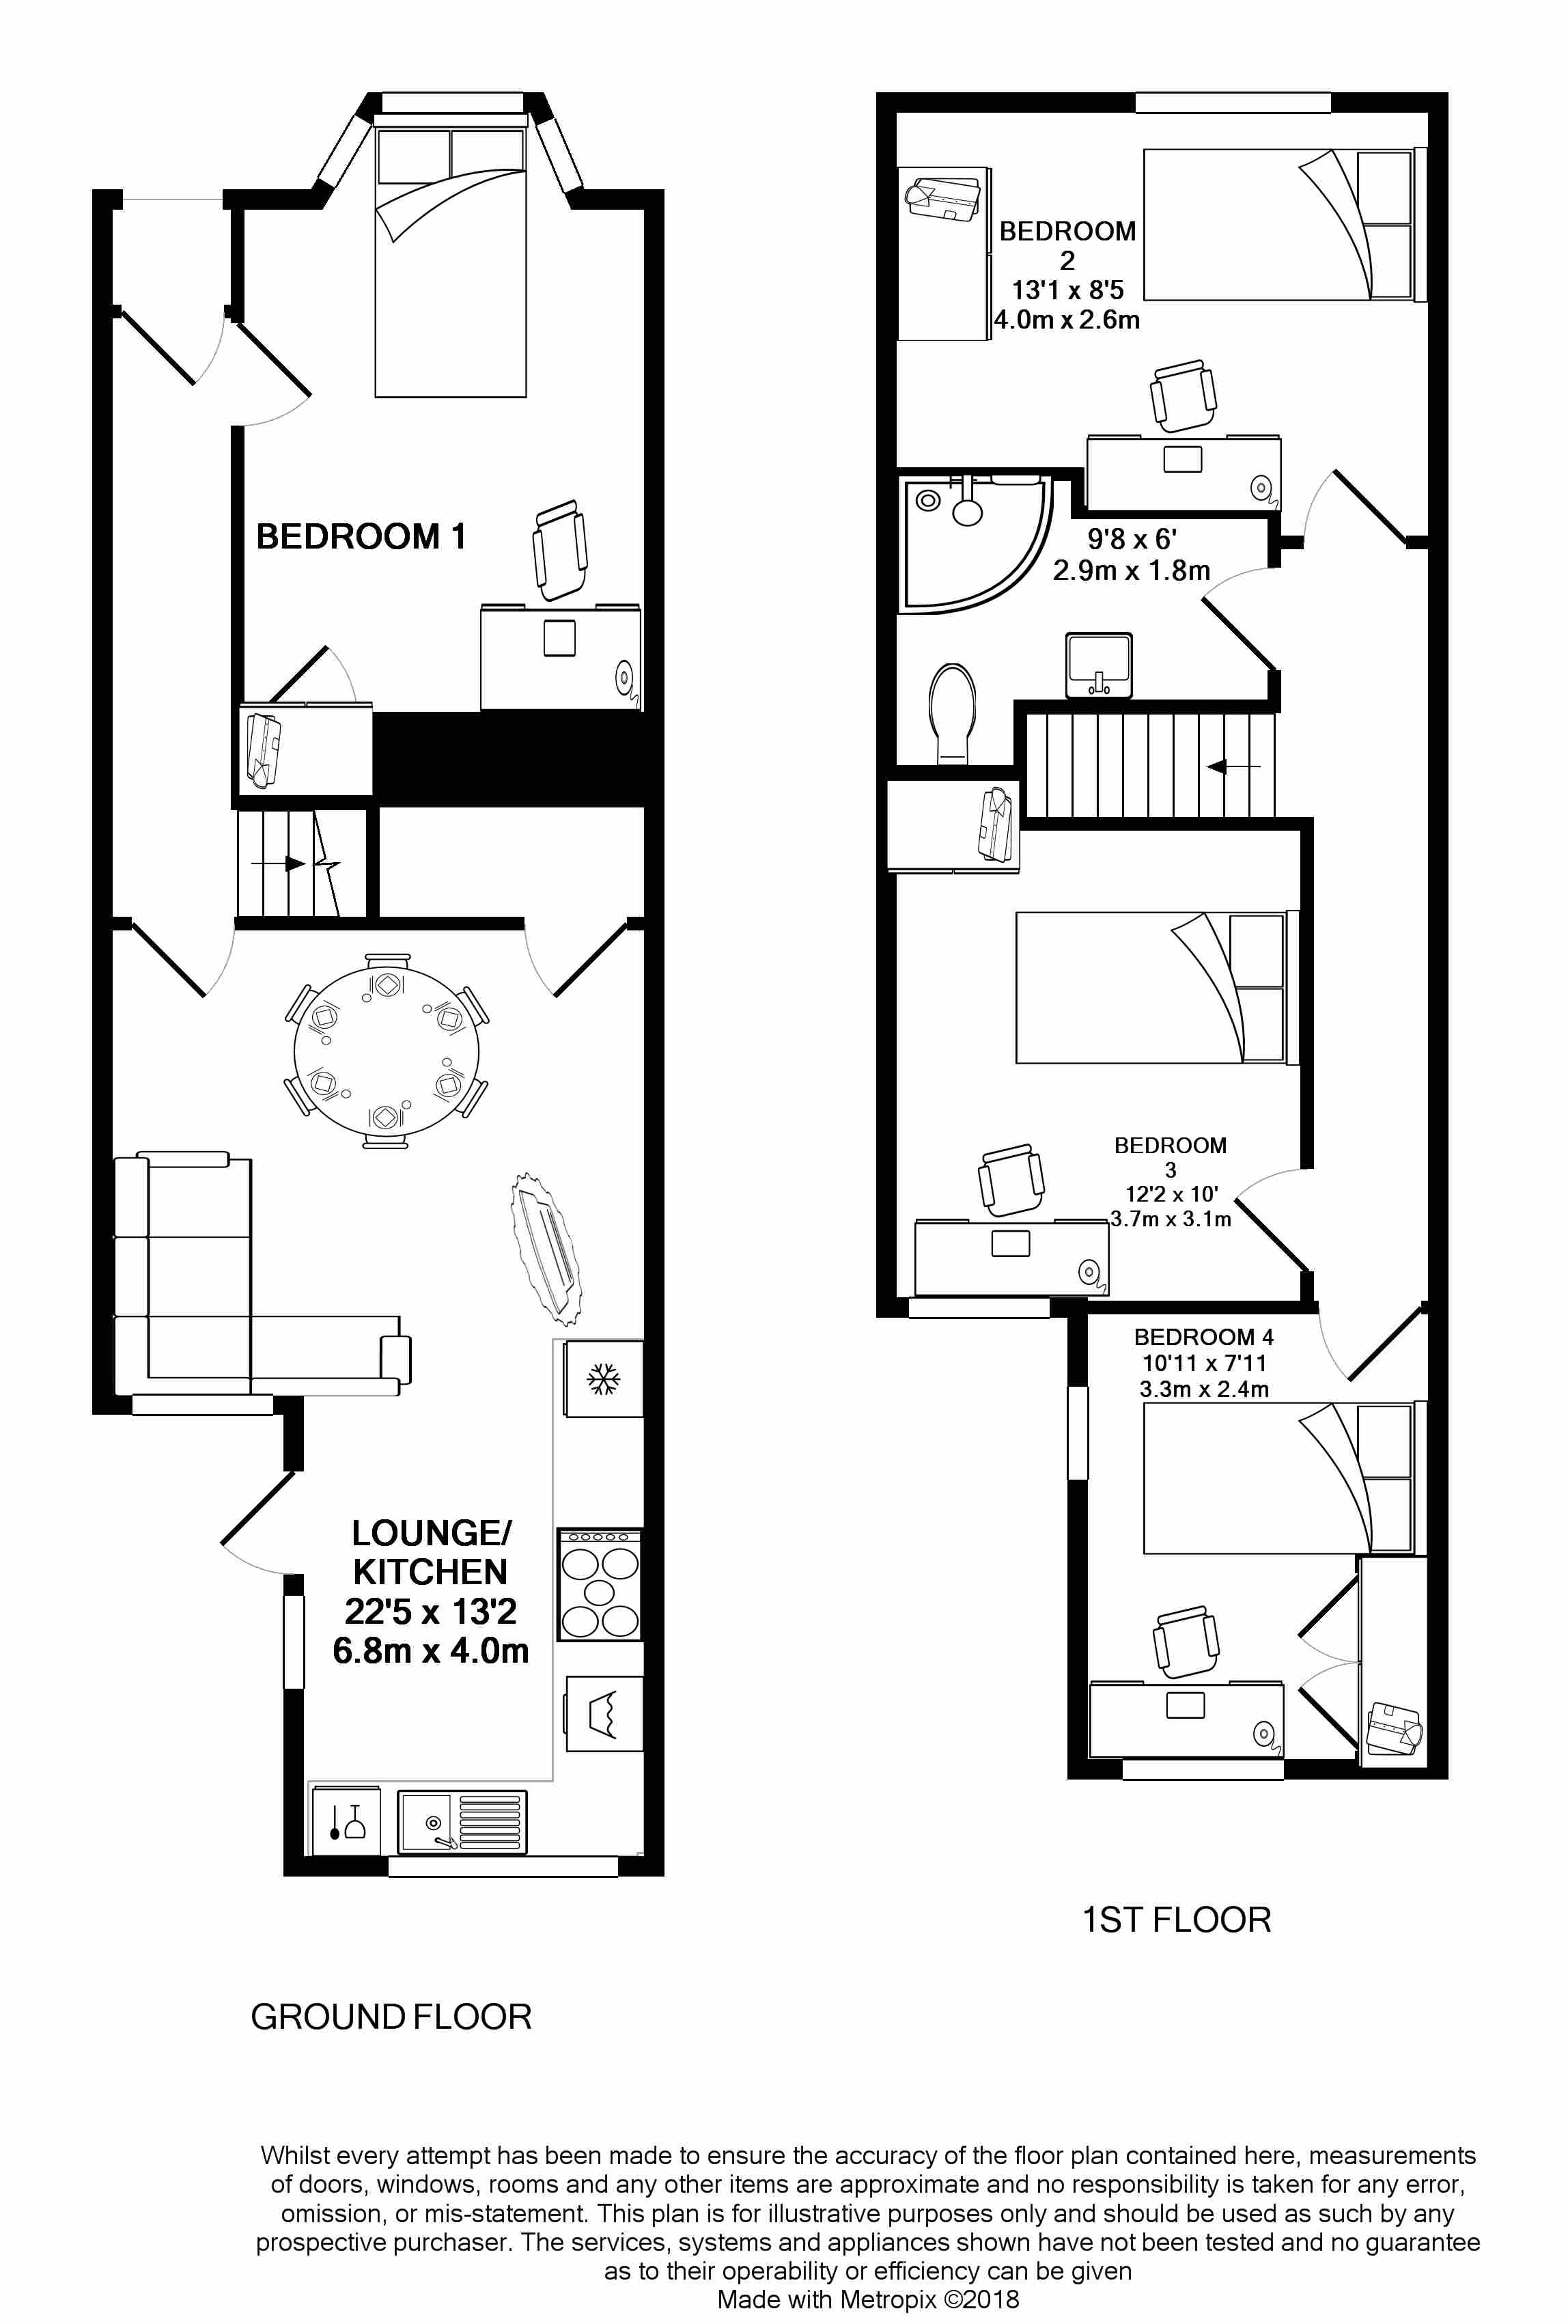 103 Bath Road - floorplans